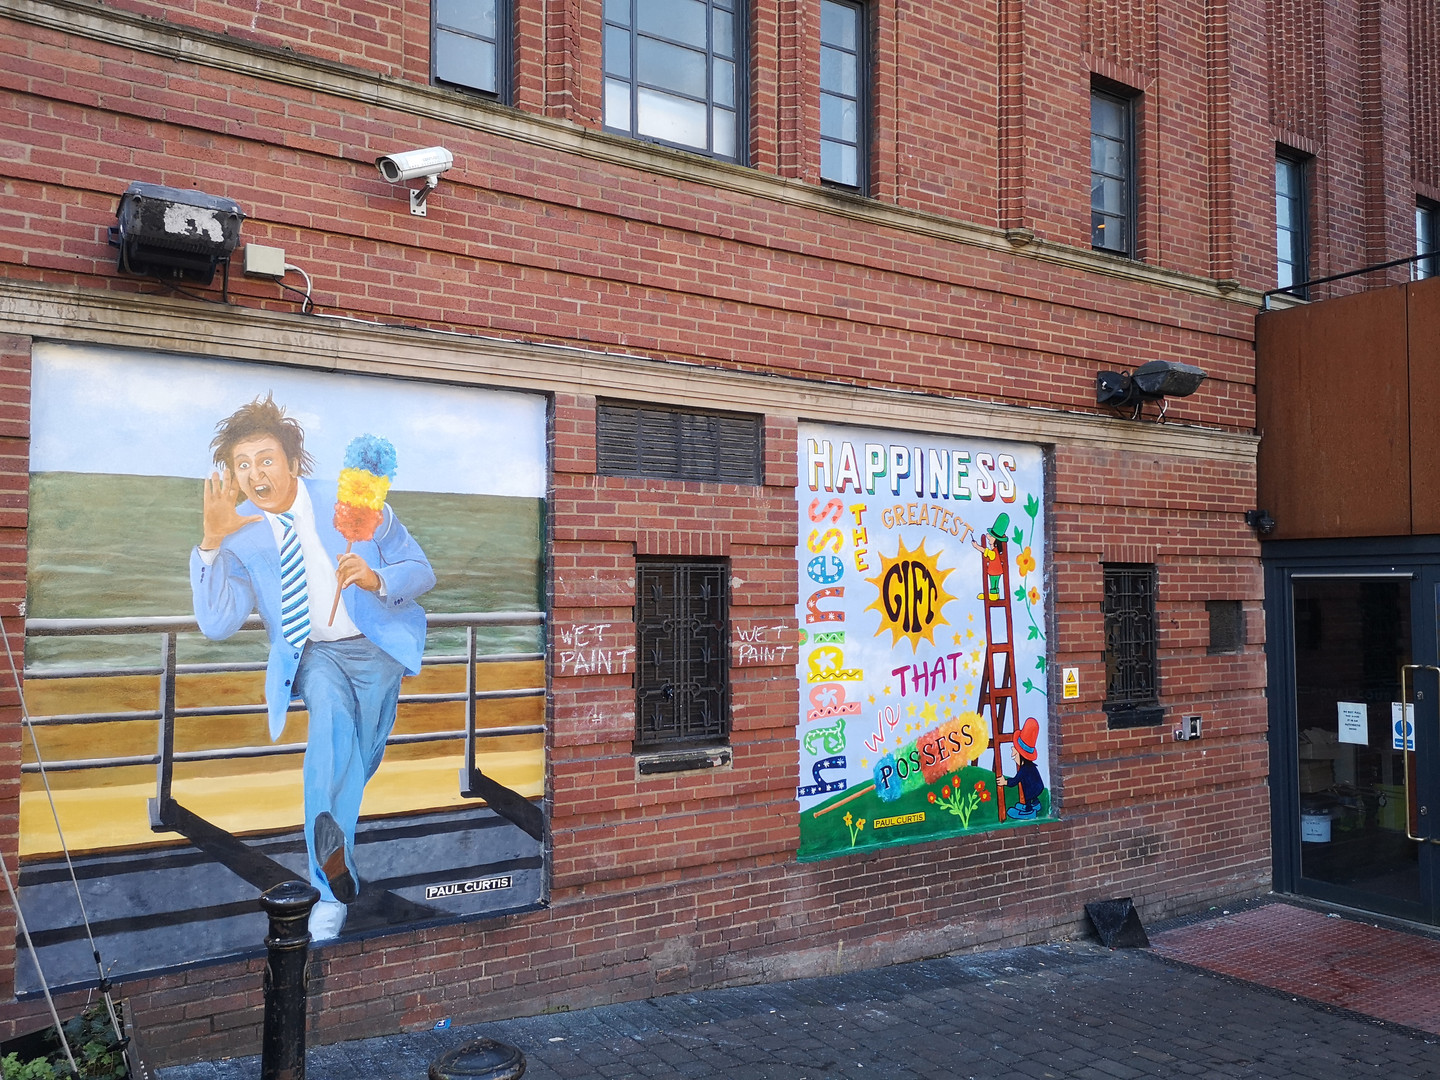 Ken Dodd and the Diddy men mural